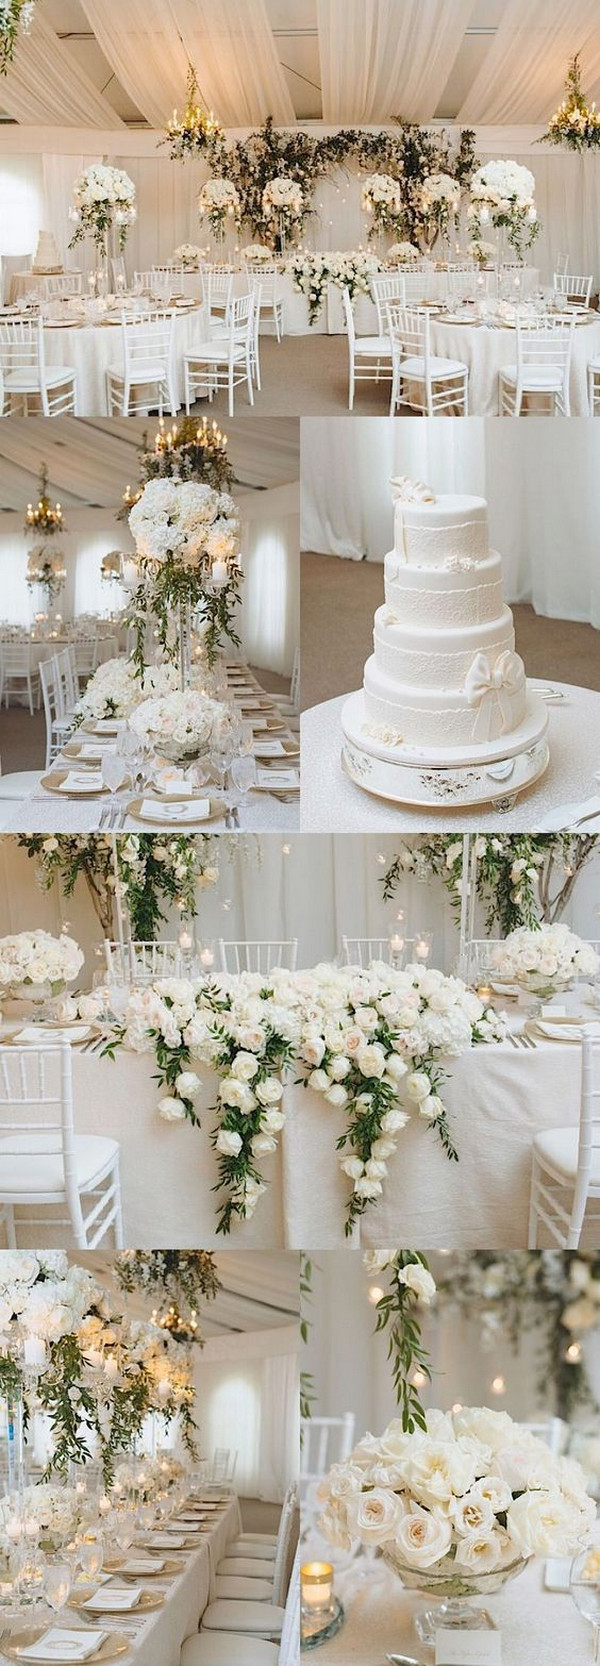 white elegant and classic wedding reception ideas